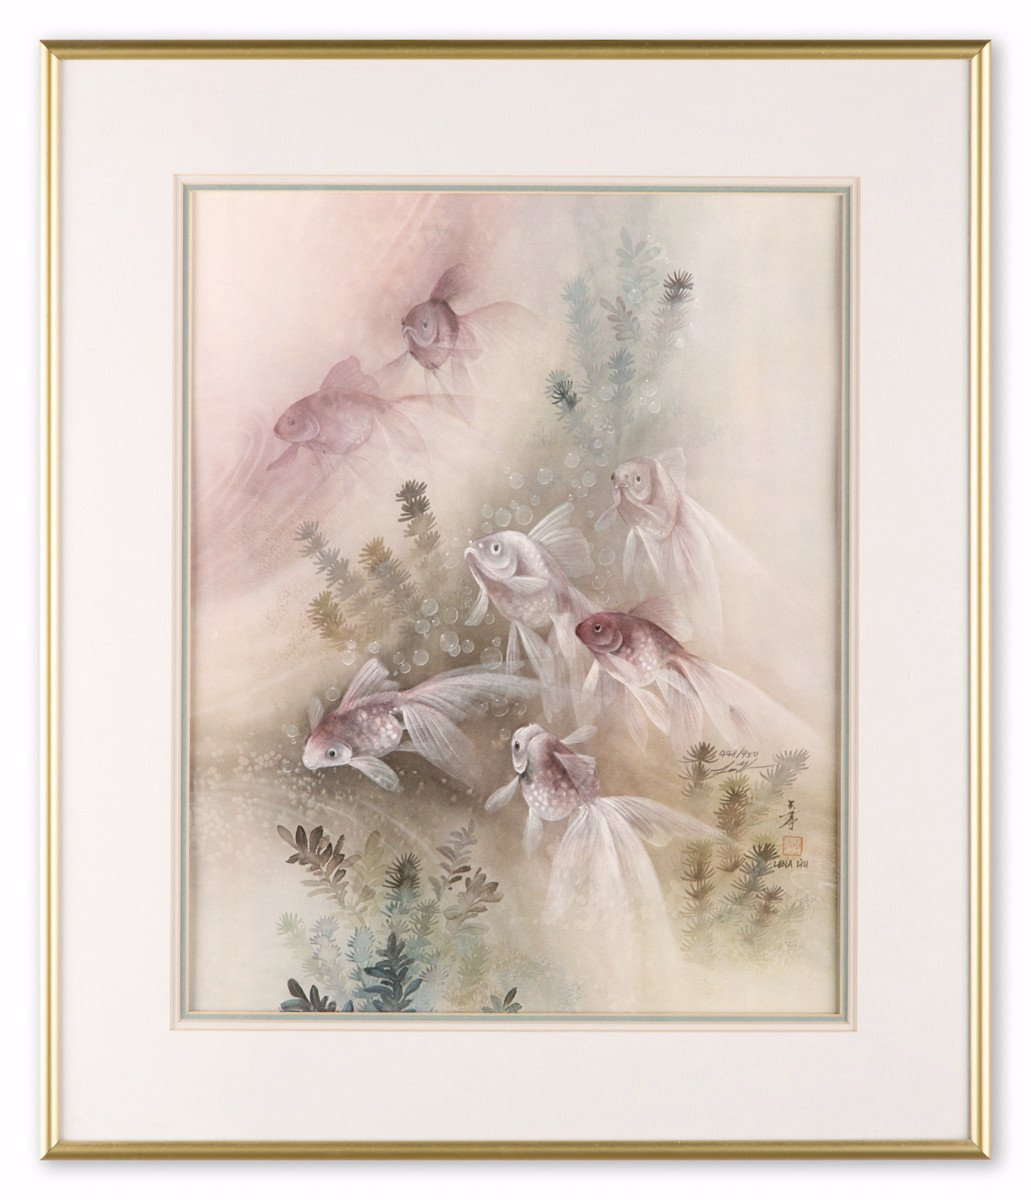 The Fish - by Lena Liu - Lithograph - Framed Art